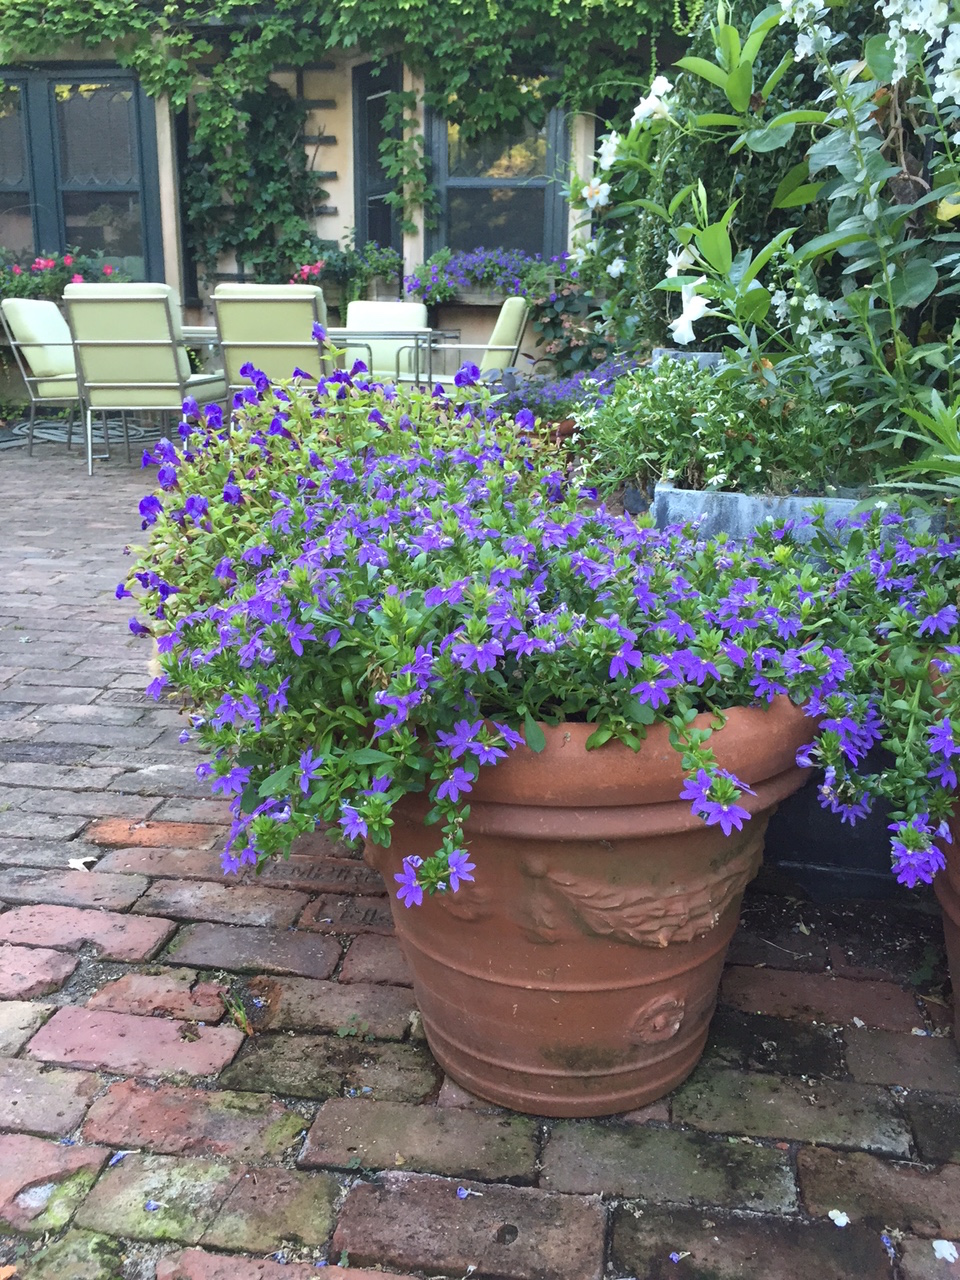 All corners of the property are considered, with blooming flowers and vines abound.Martha is a huge proponent of planting in pots: this terra cotta pot is planted with Torenia and Scaevola, two gorgeous purple annuals that are not too fussy, are pretty drought tolerant,and their flowers just so bright.